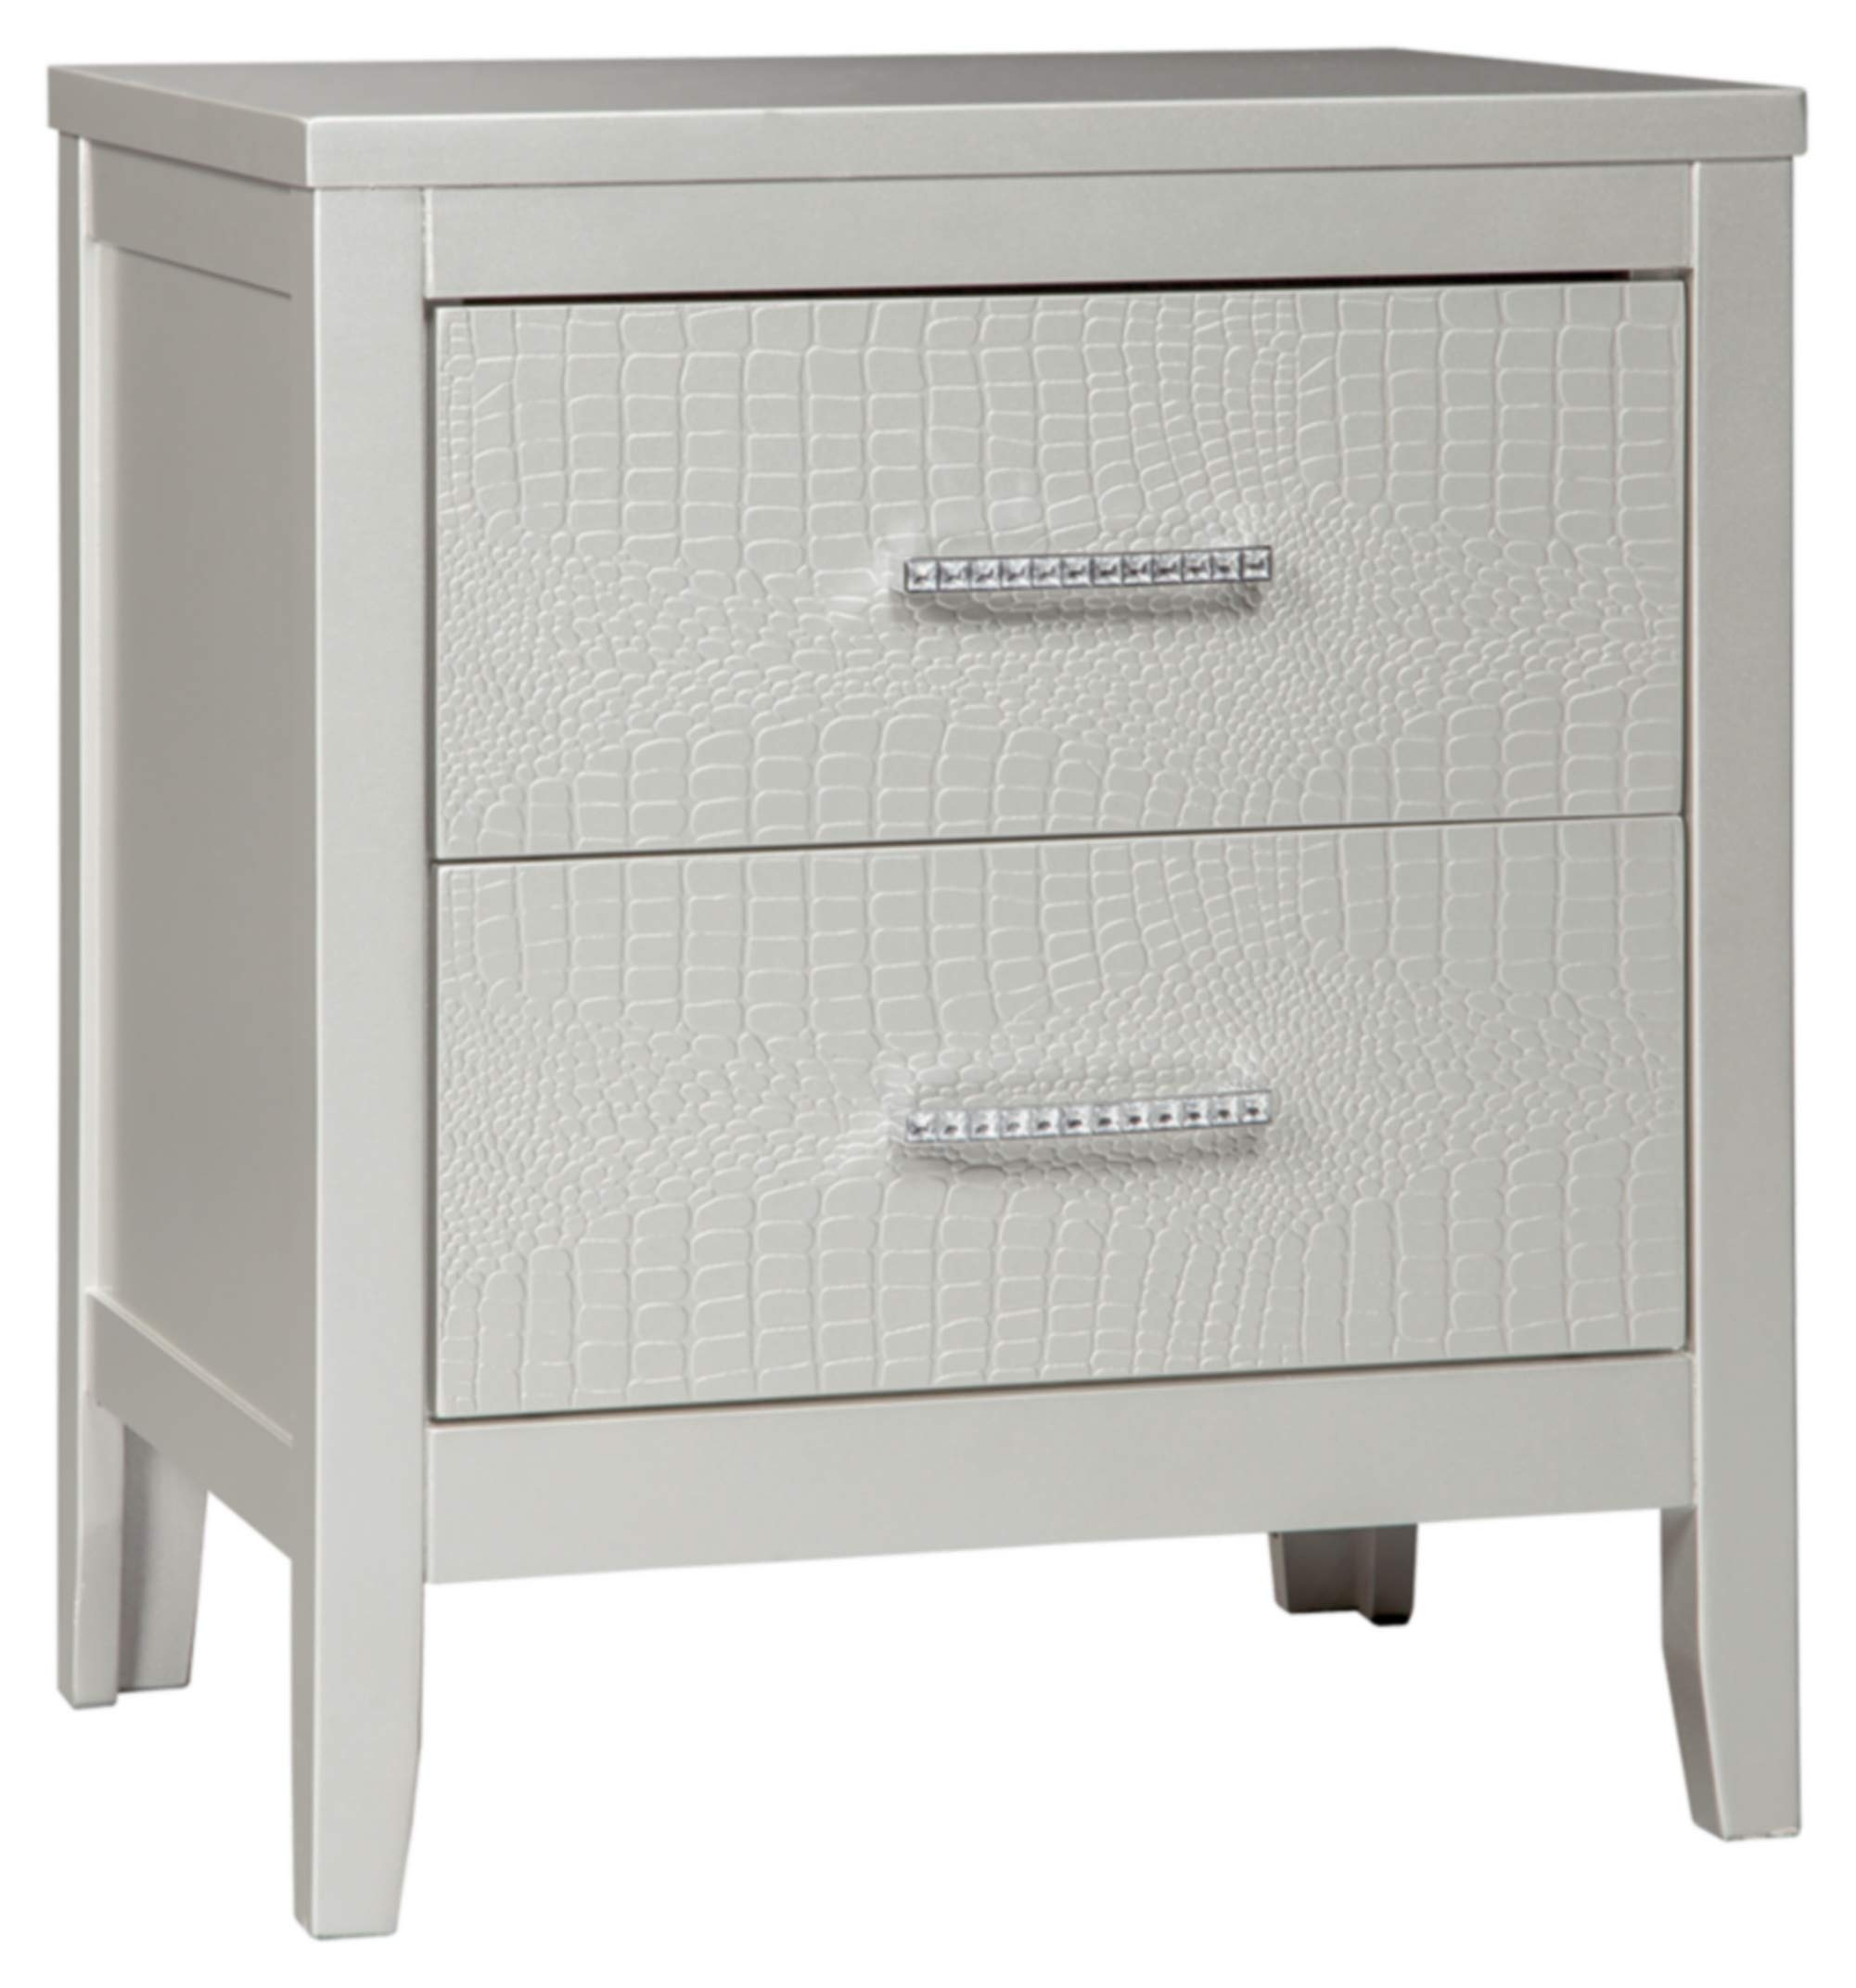 Ashley Furniture Signature Design - Olivet Nightstand - Contemporary Glam - 2 Drawers - Silvertone Metallic Finish - Chrome Pulls w/ Decorative Faux Crystals by Signature Design by Ashley